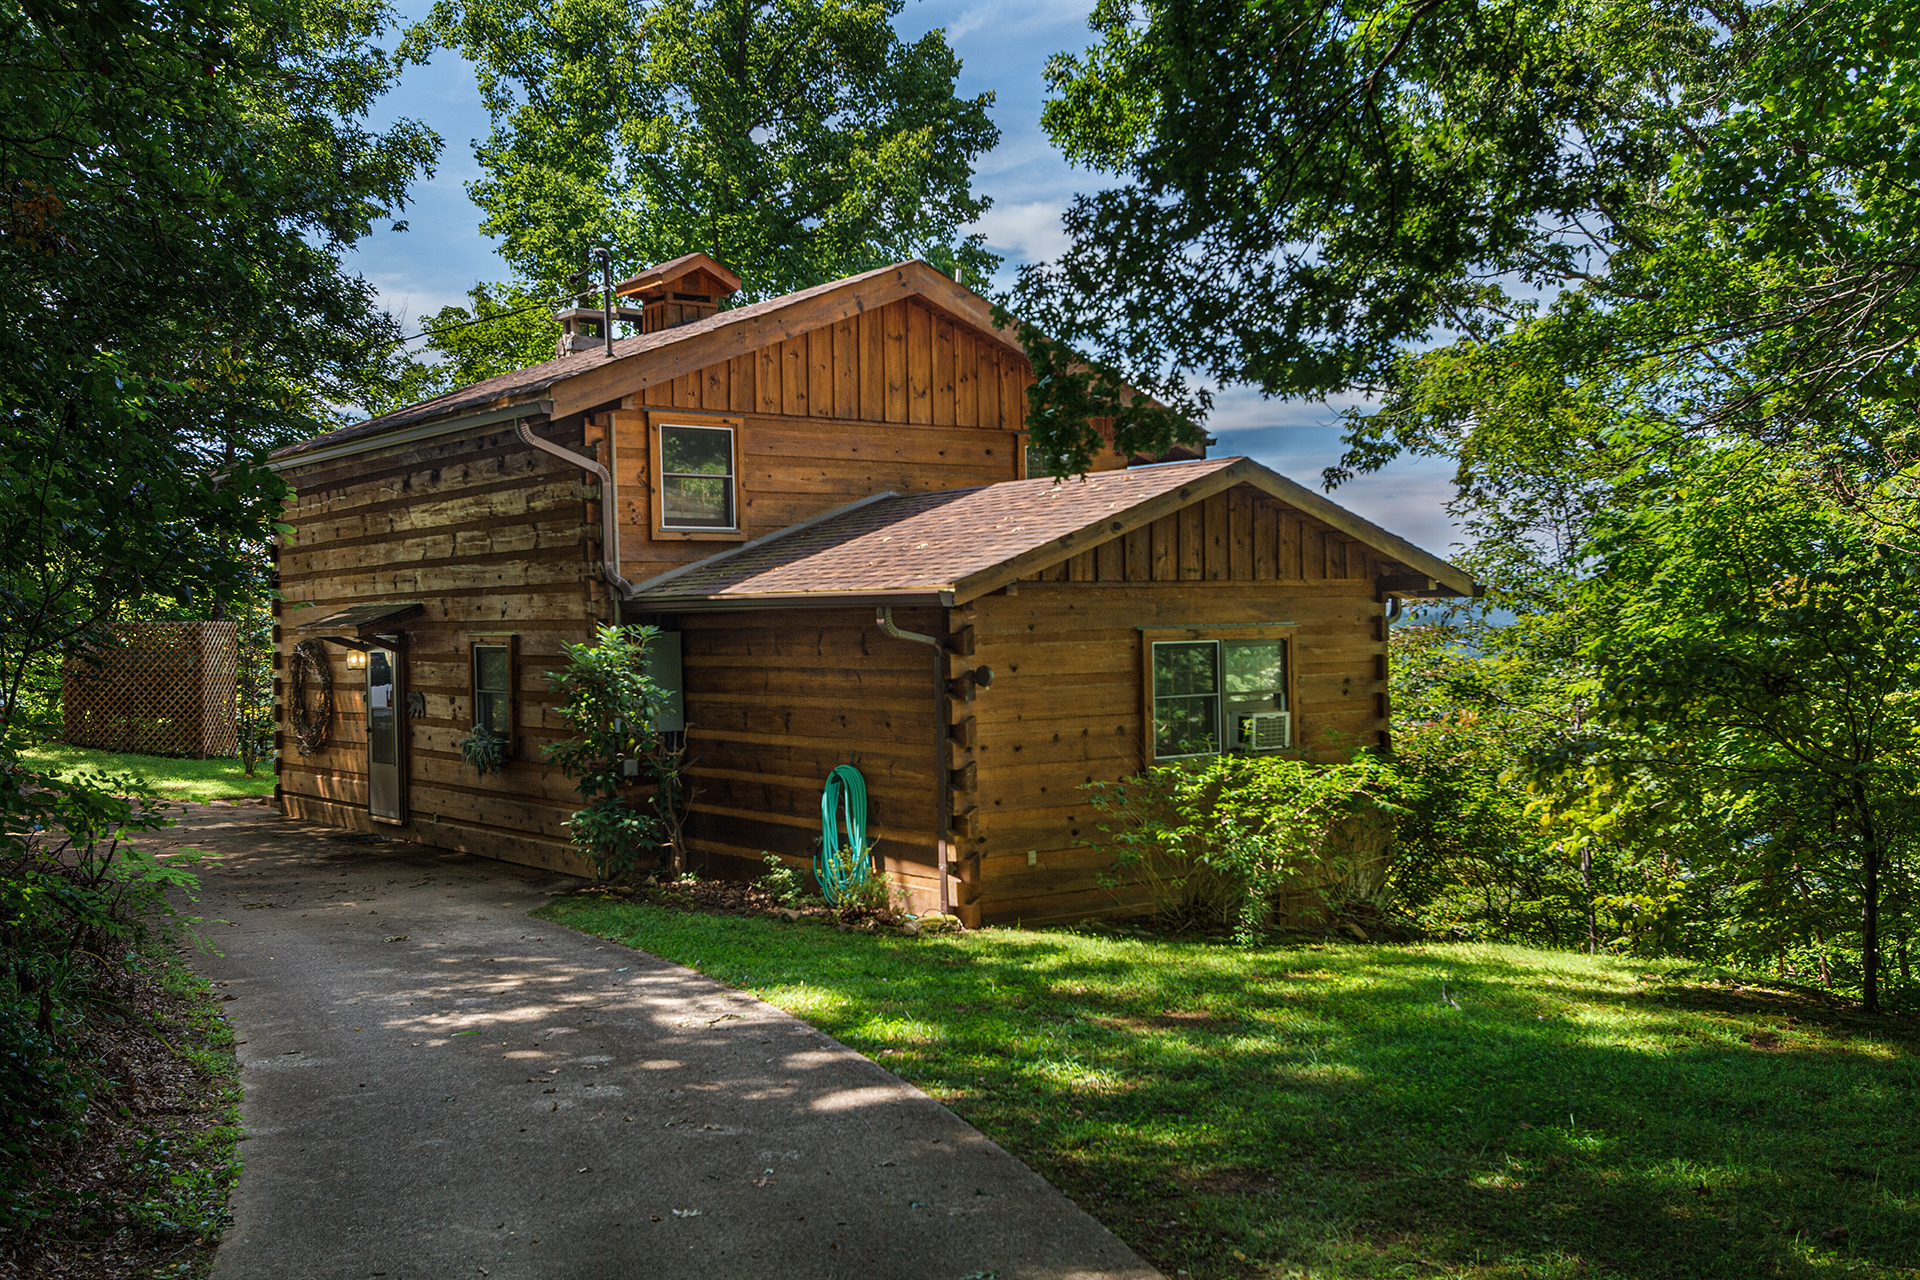 home city rentals the bryson views with asp cabins vacation deep nc summit near room rental creek game cabin mountain